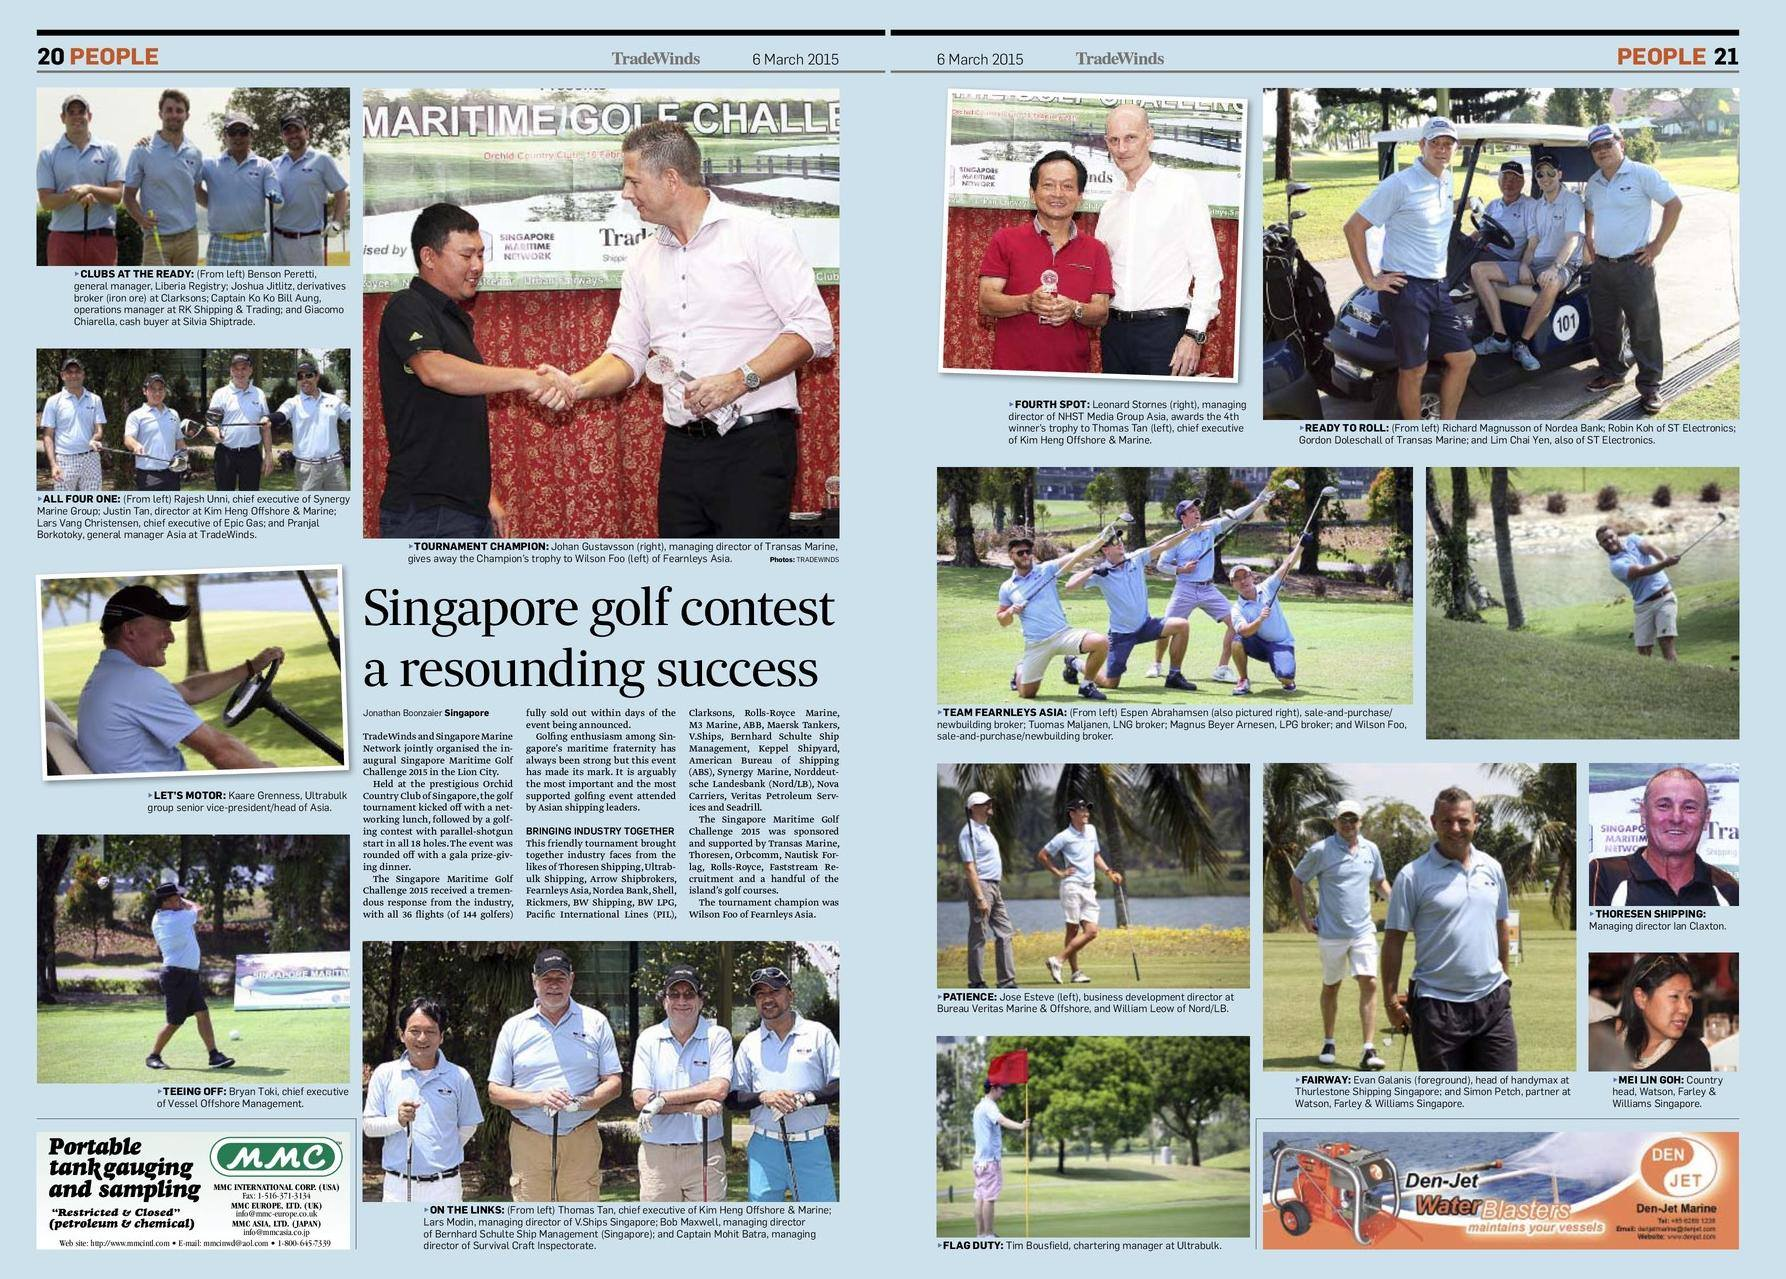 Singapore Maritime Golf - A resounding success